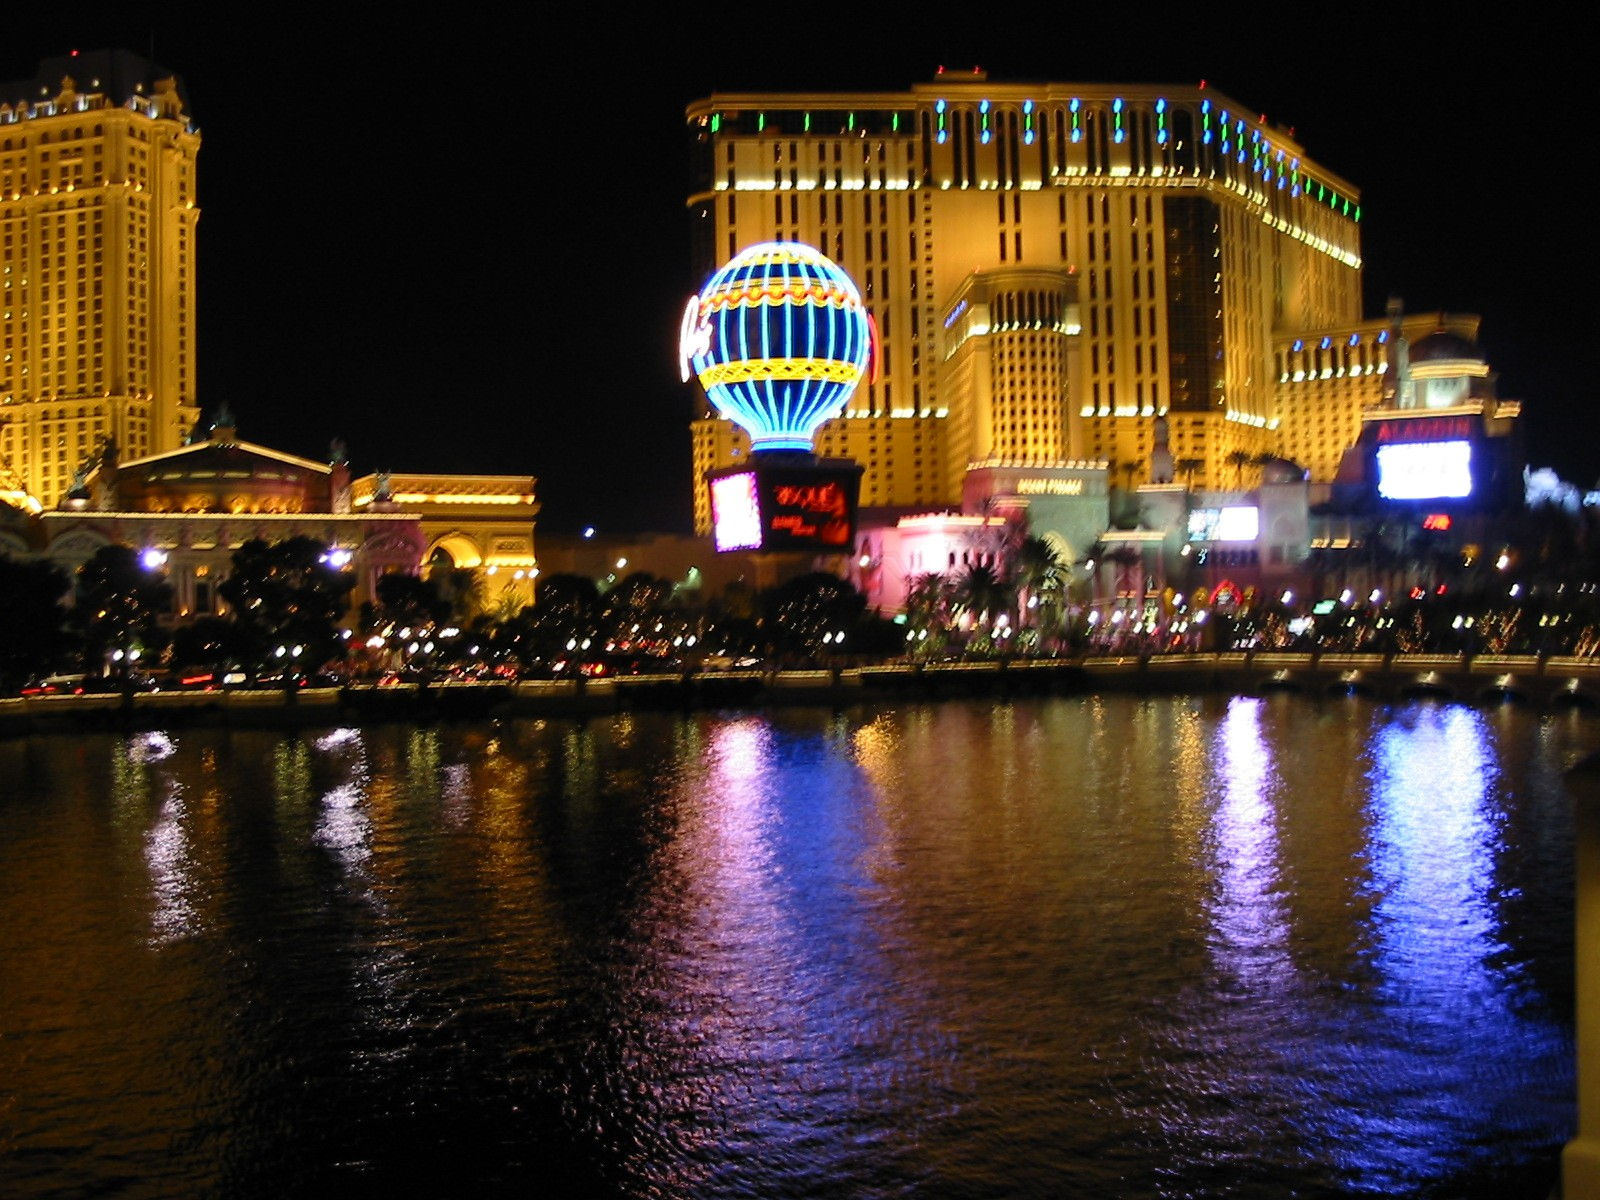 Paris From the Bellagio